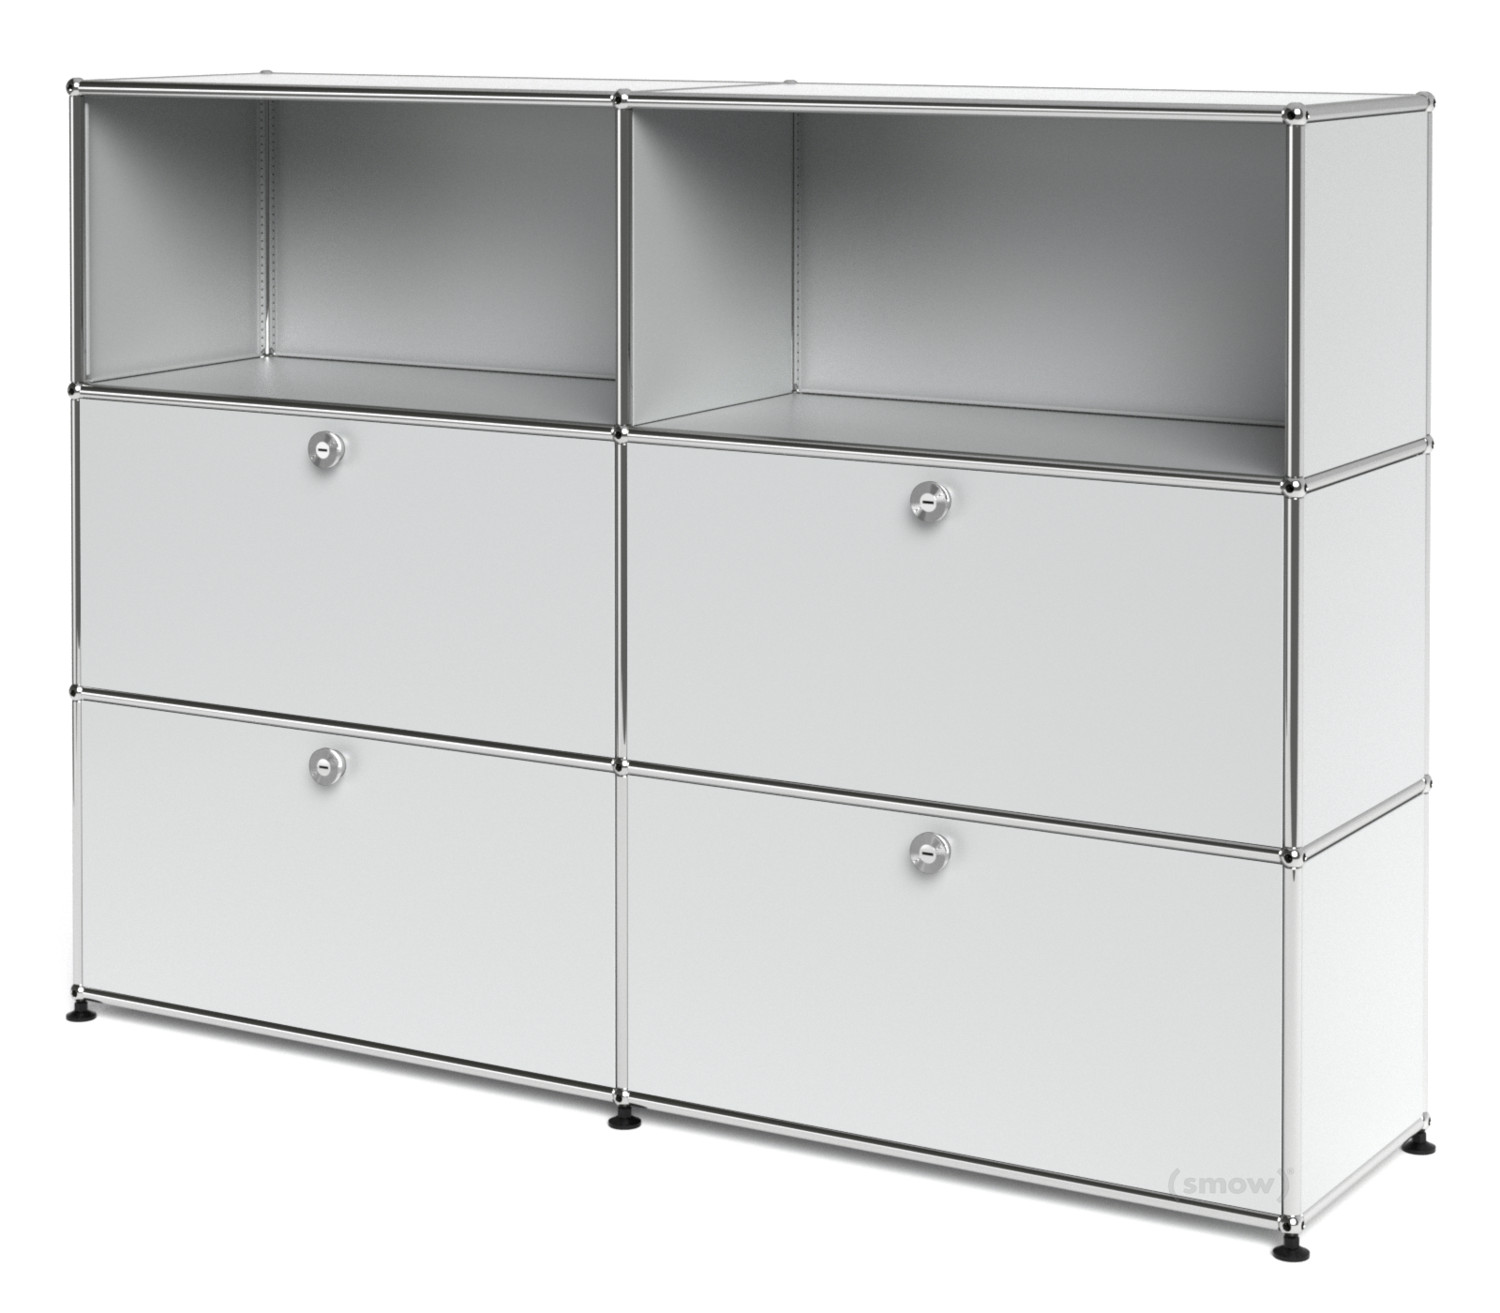 usm haller highboard l mit 4 klappen usm mattsilber von. Black Bedroom Furniture Sets. Home Design Ideas